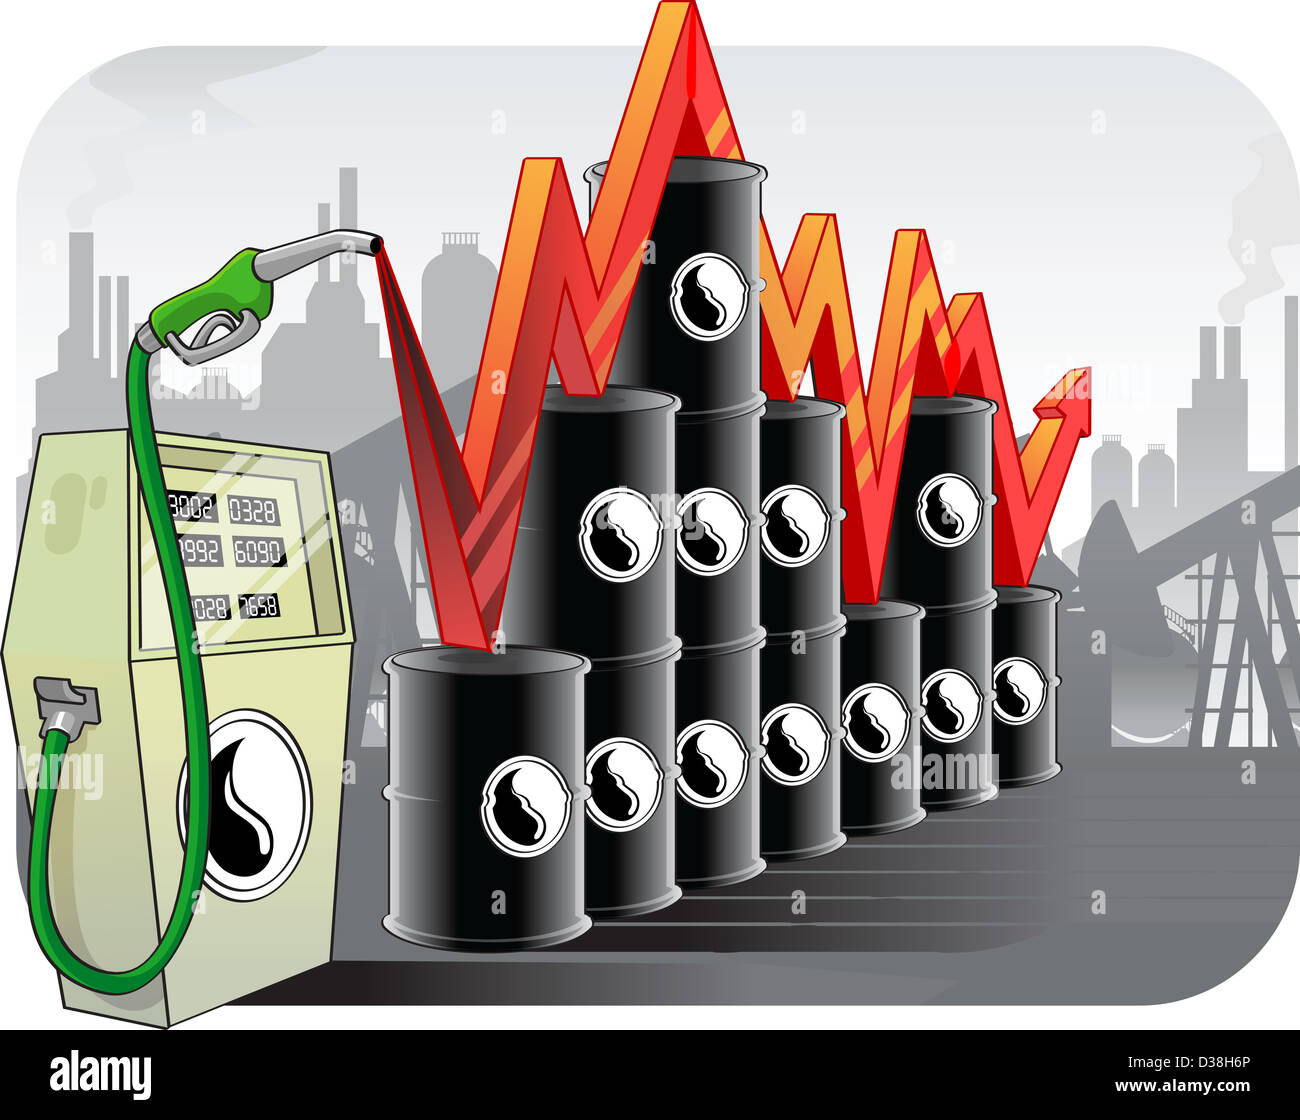 Illustration representing fluctuation in oil prices - Stock Image